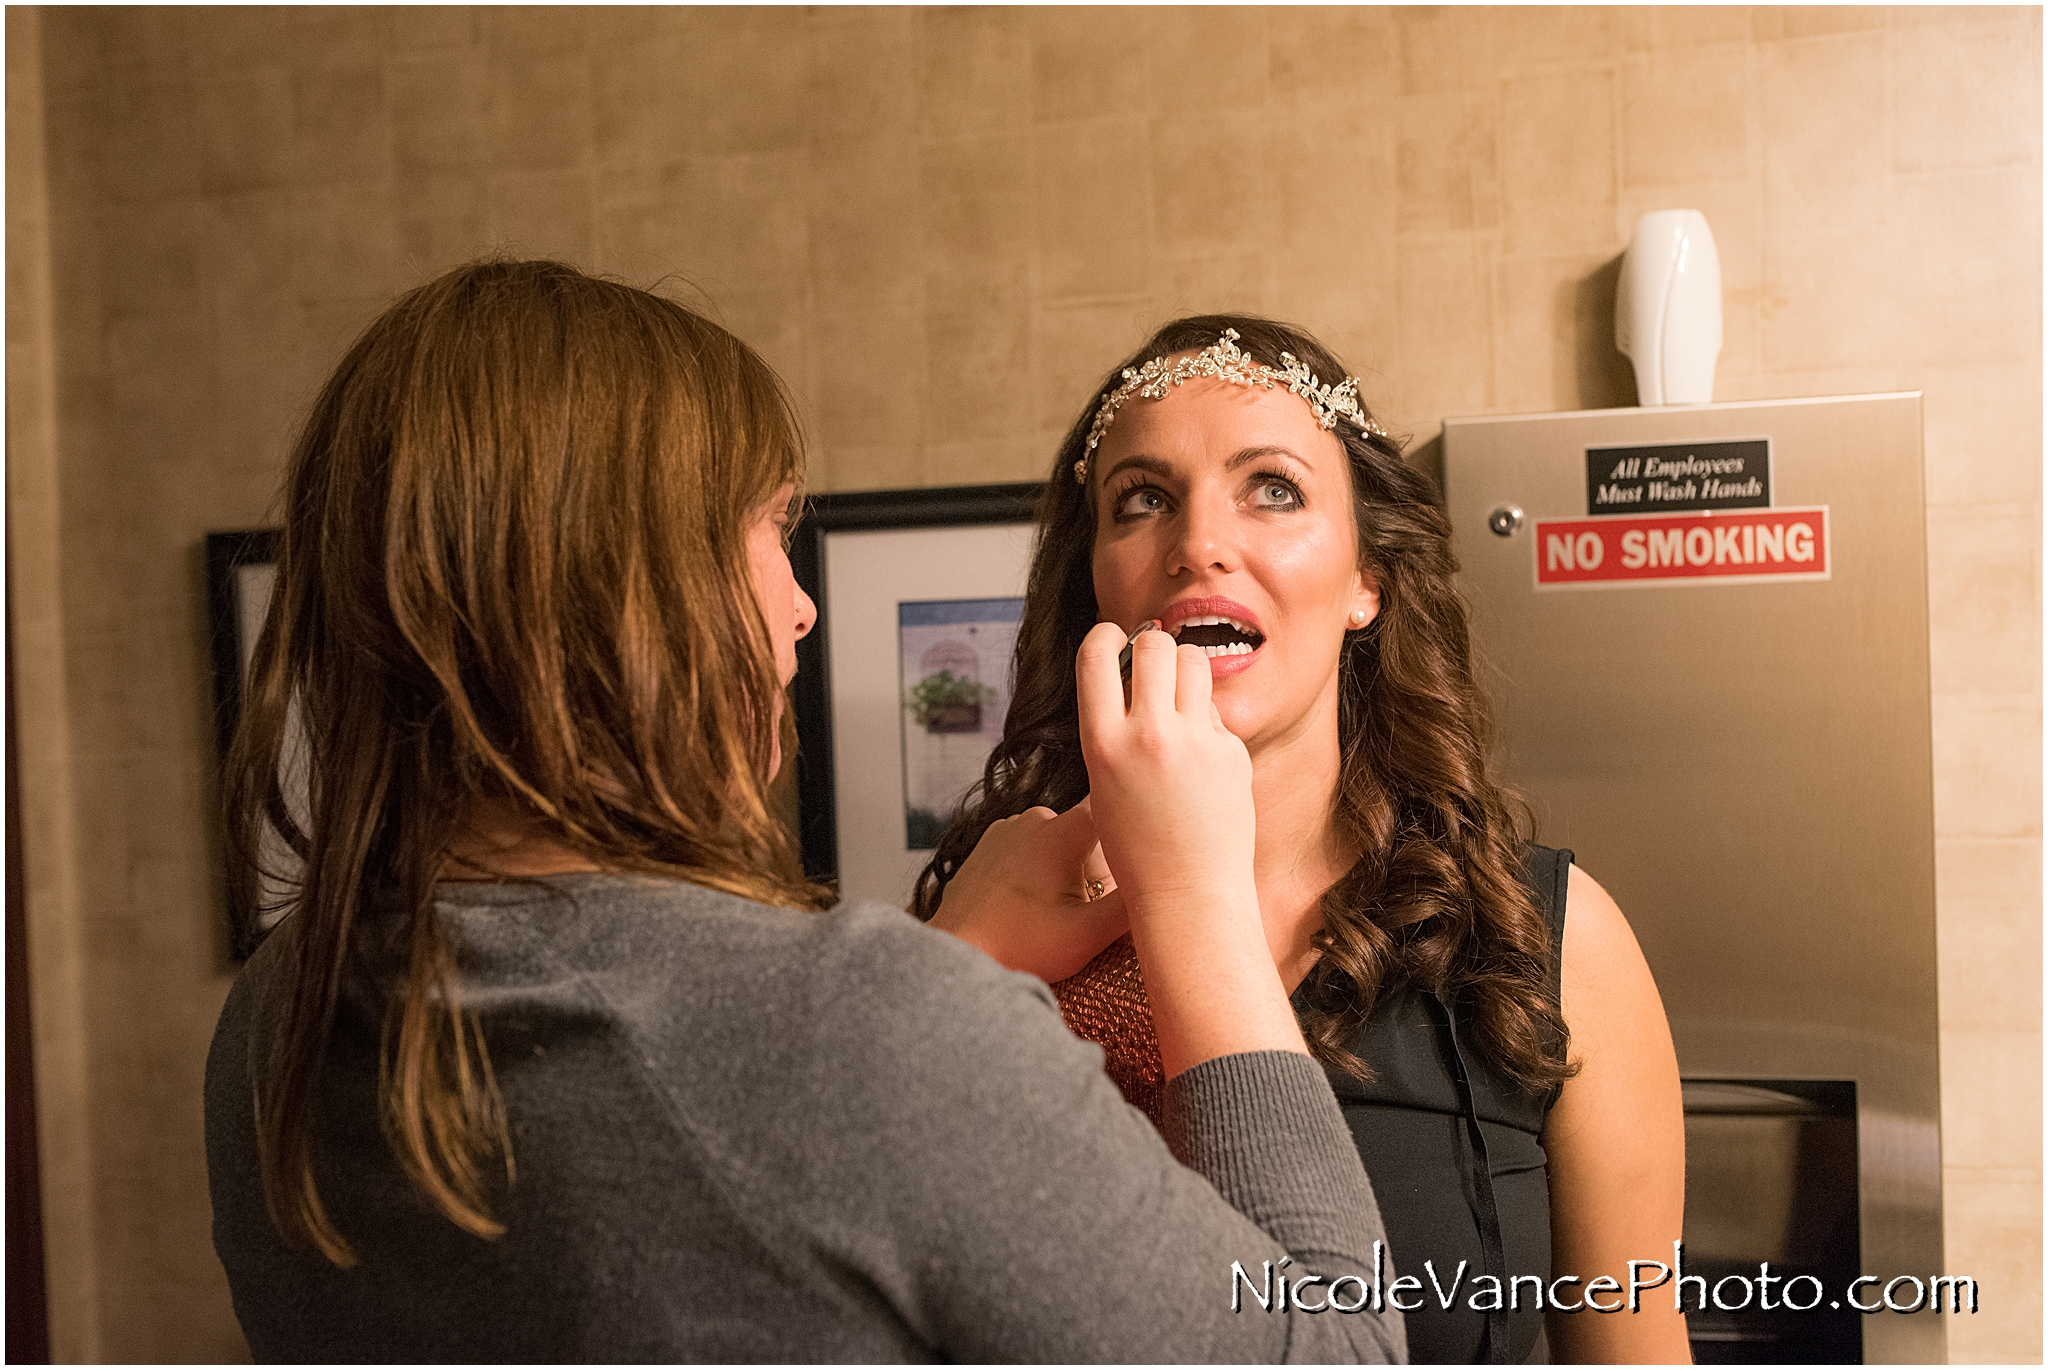 The bride gets last minute touch ups in the bathroom at Bookbinders.